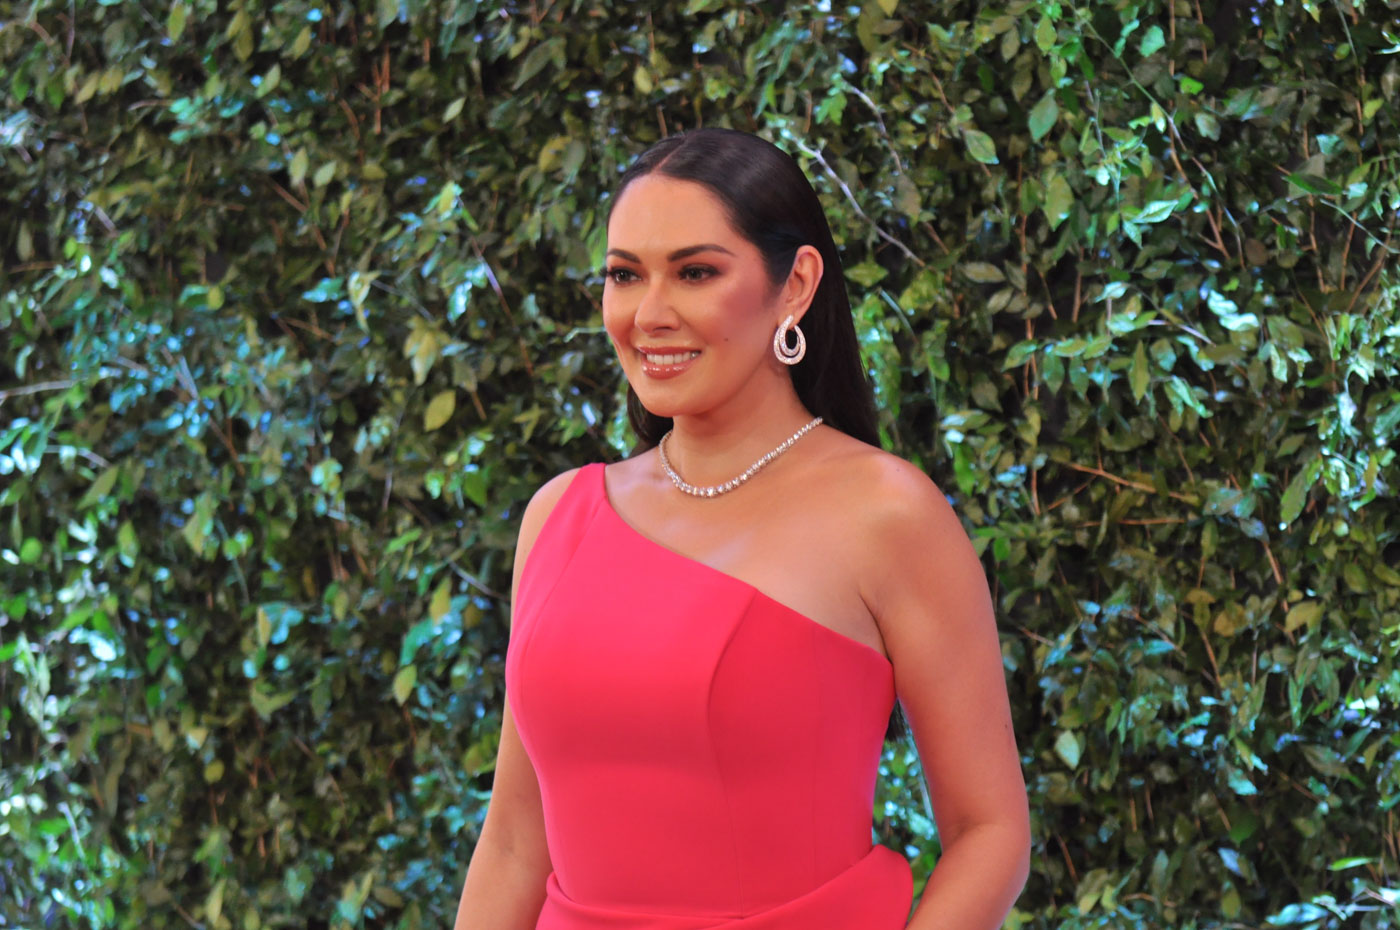 MISS WORLD PH 1993. Ruffa Gutierrez at the ABS-CBN Ball last September 29. Photo by Jay Ganzon/Rappler